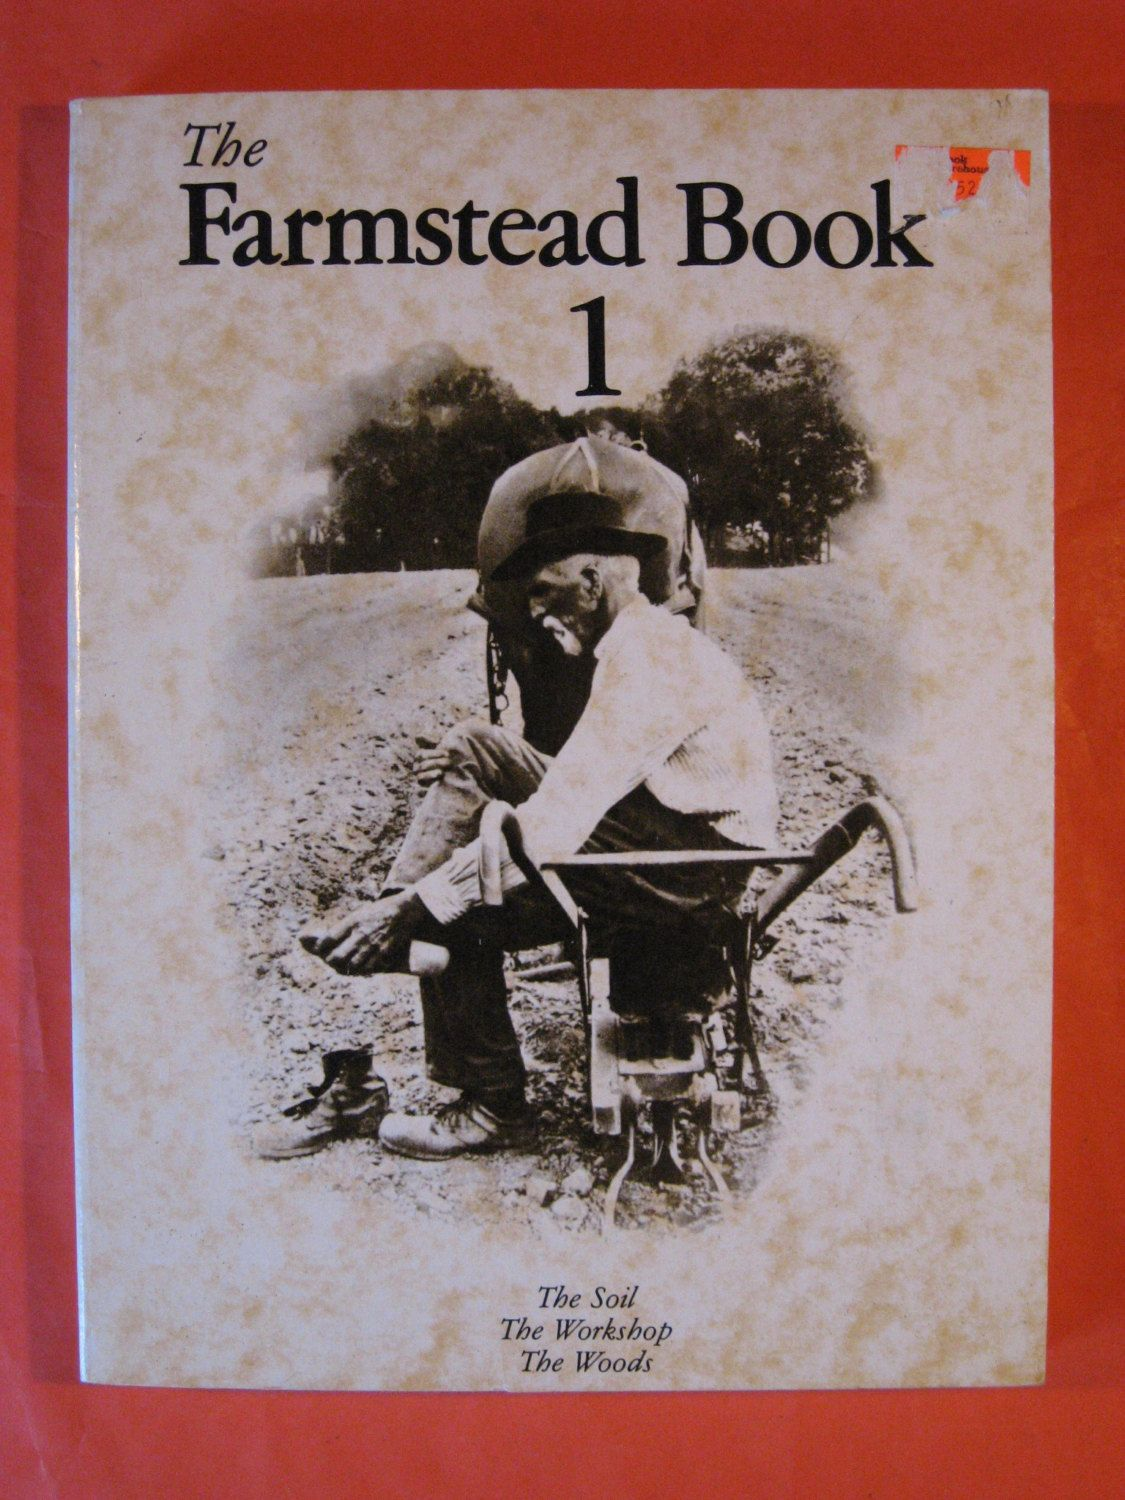 The Farmstead Book 1: The Soil, the Workshop, the Woods by Pistilbooks on Etsy